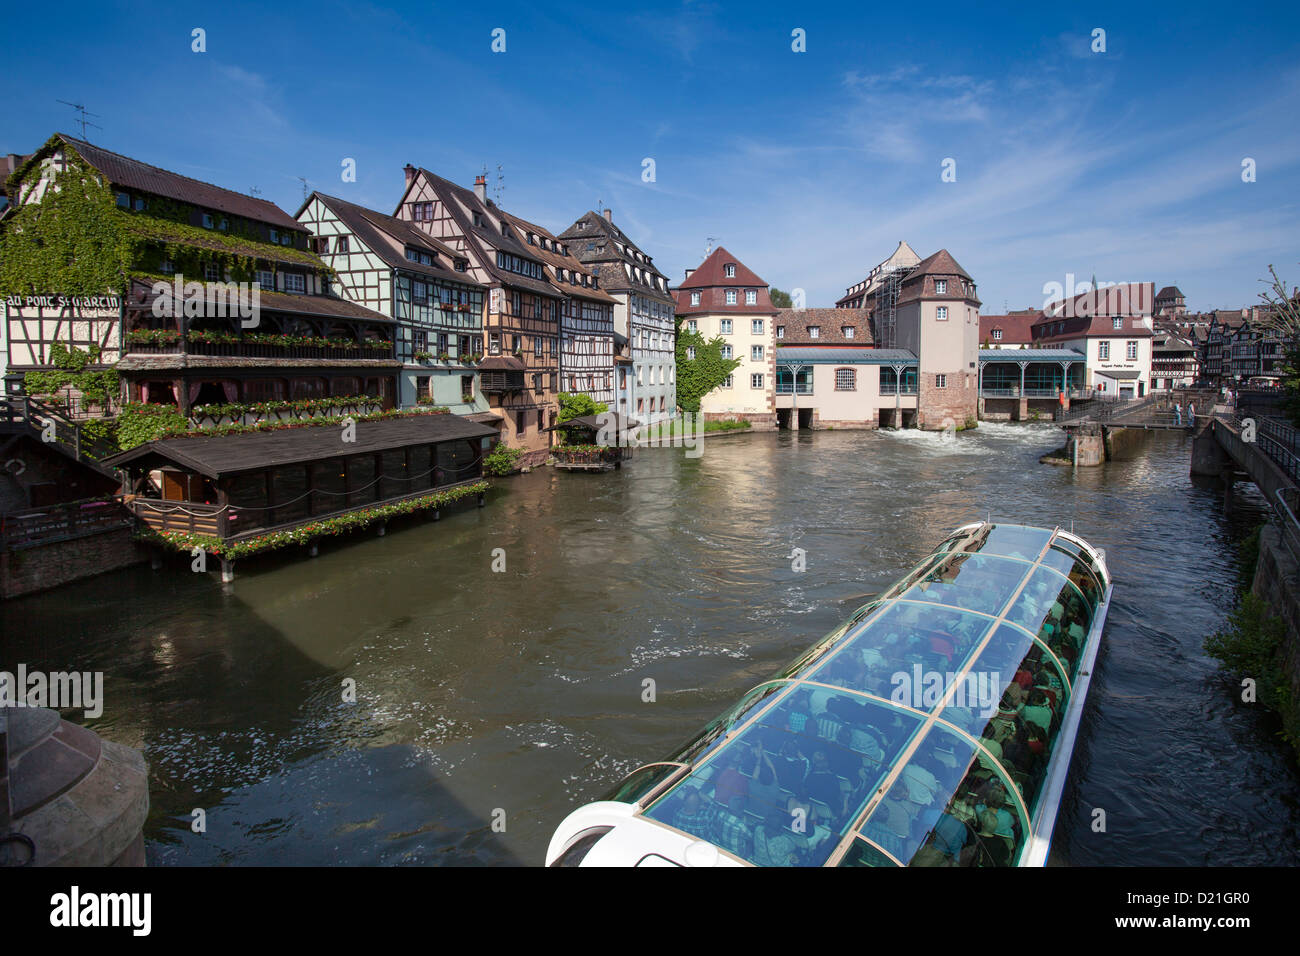 Restaurant Au Pont St. Martin and half-timbered houses and sightseeing boat on canal in La Petite France district, - Stock Image